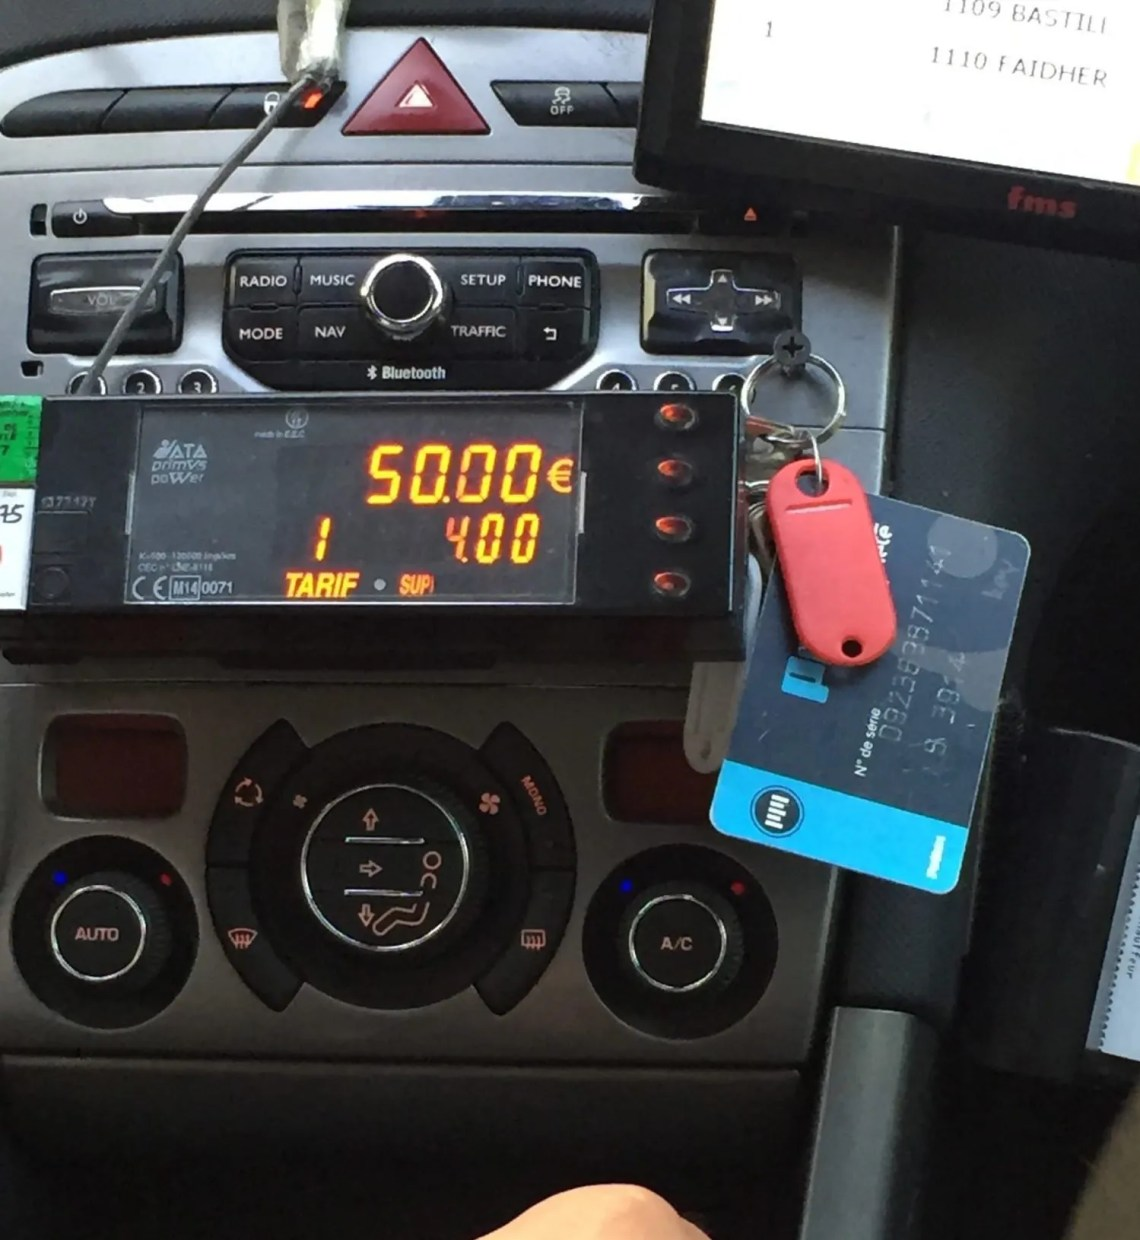 Fixed Paris taxi fare from right bank plus supplement for reserving day of reservation